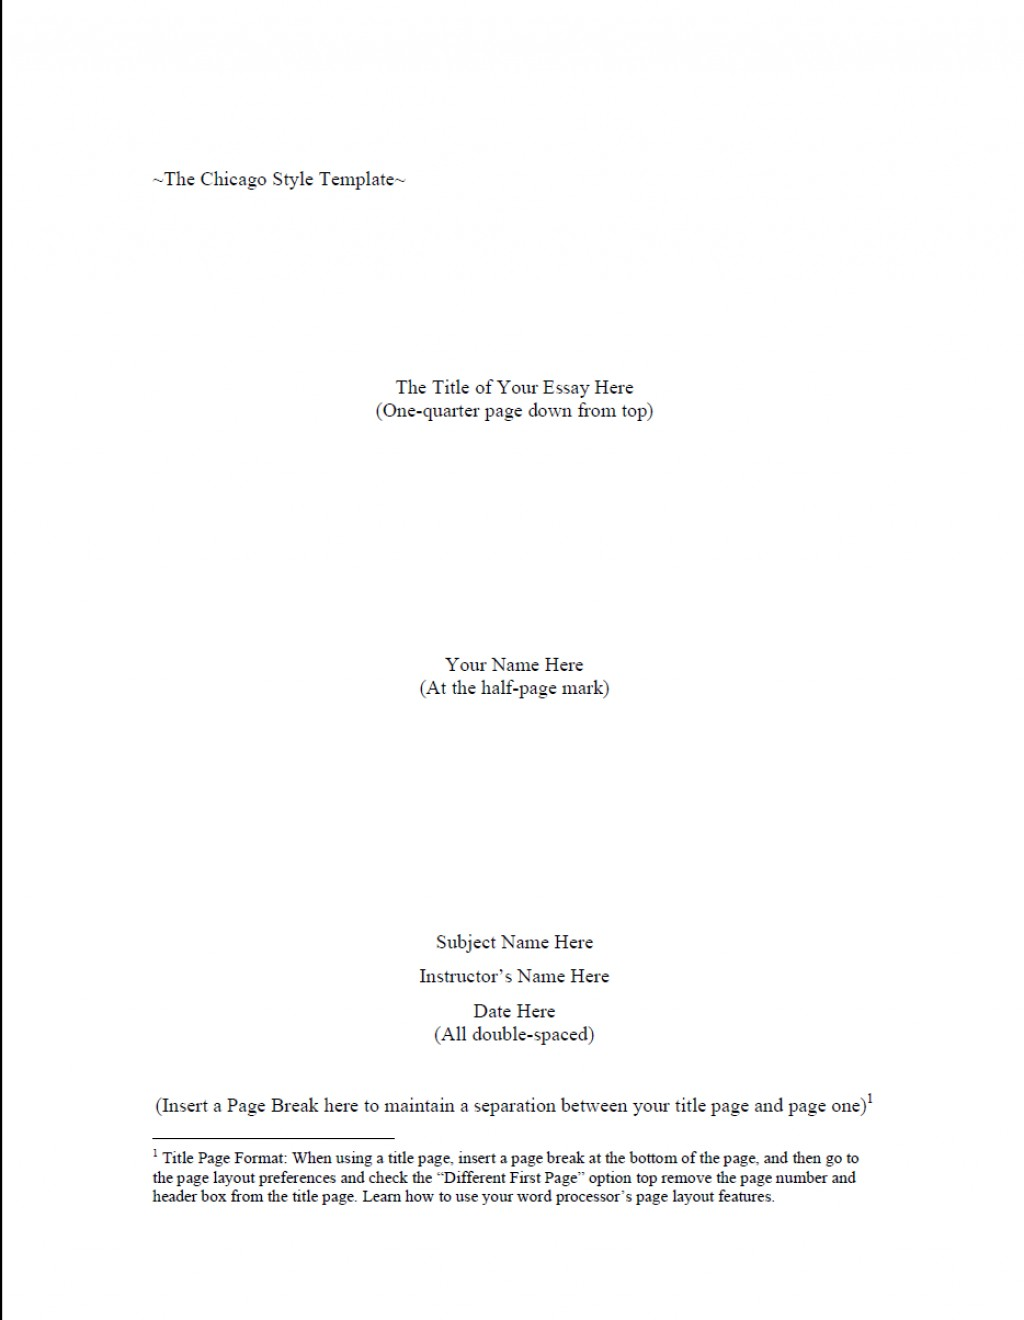 005 Research Paper Chicago Style Paper1 Of Writing Impressive Papers Sample Format Large